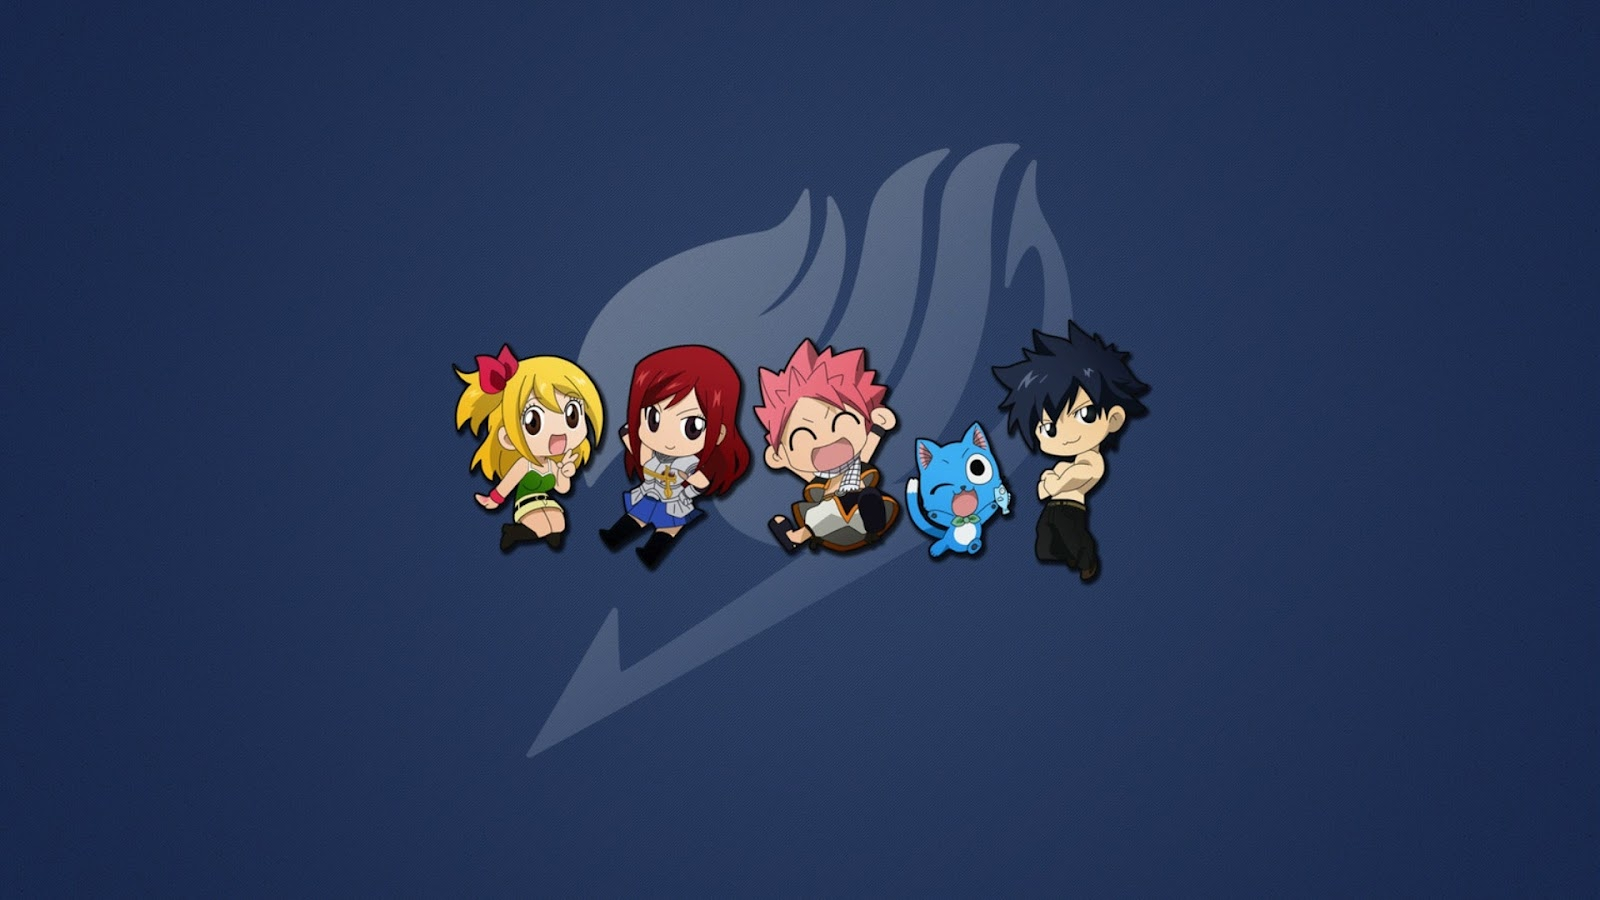 Your Wallpaper Fairy Tail Wallpaper 1600x900